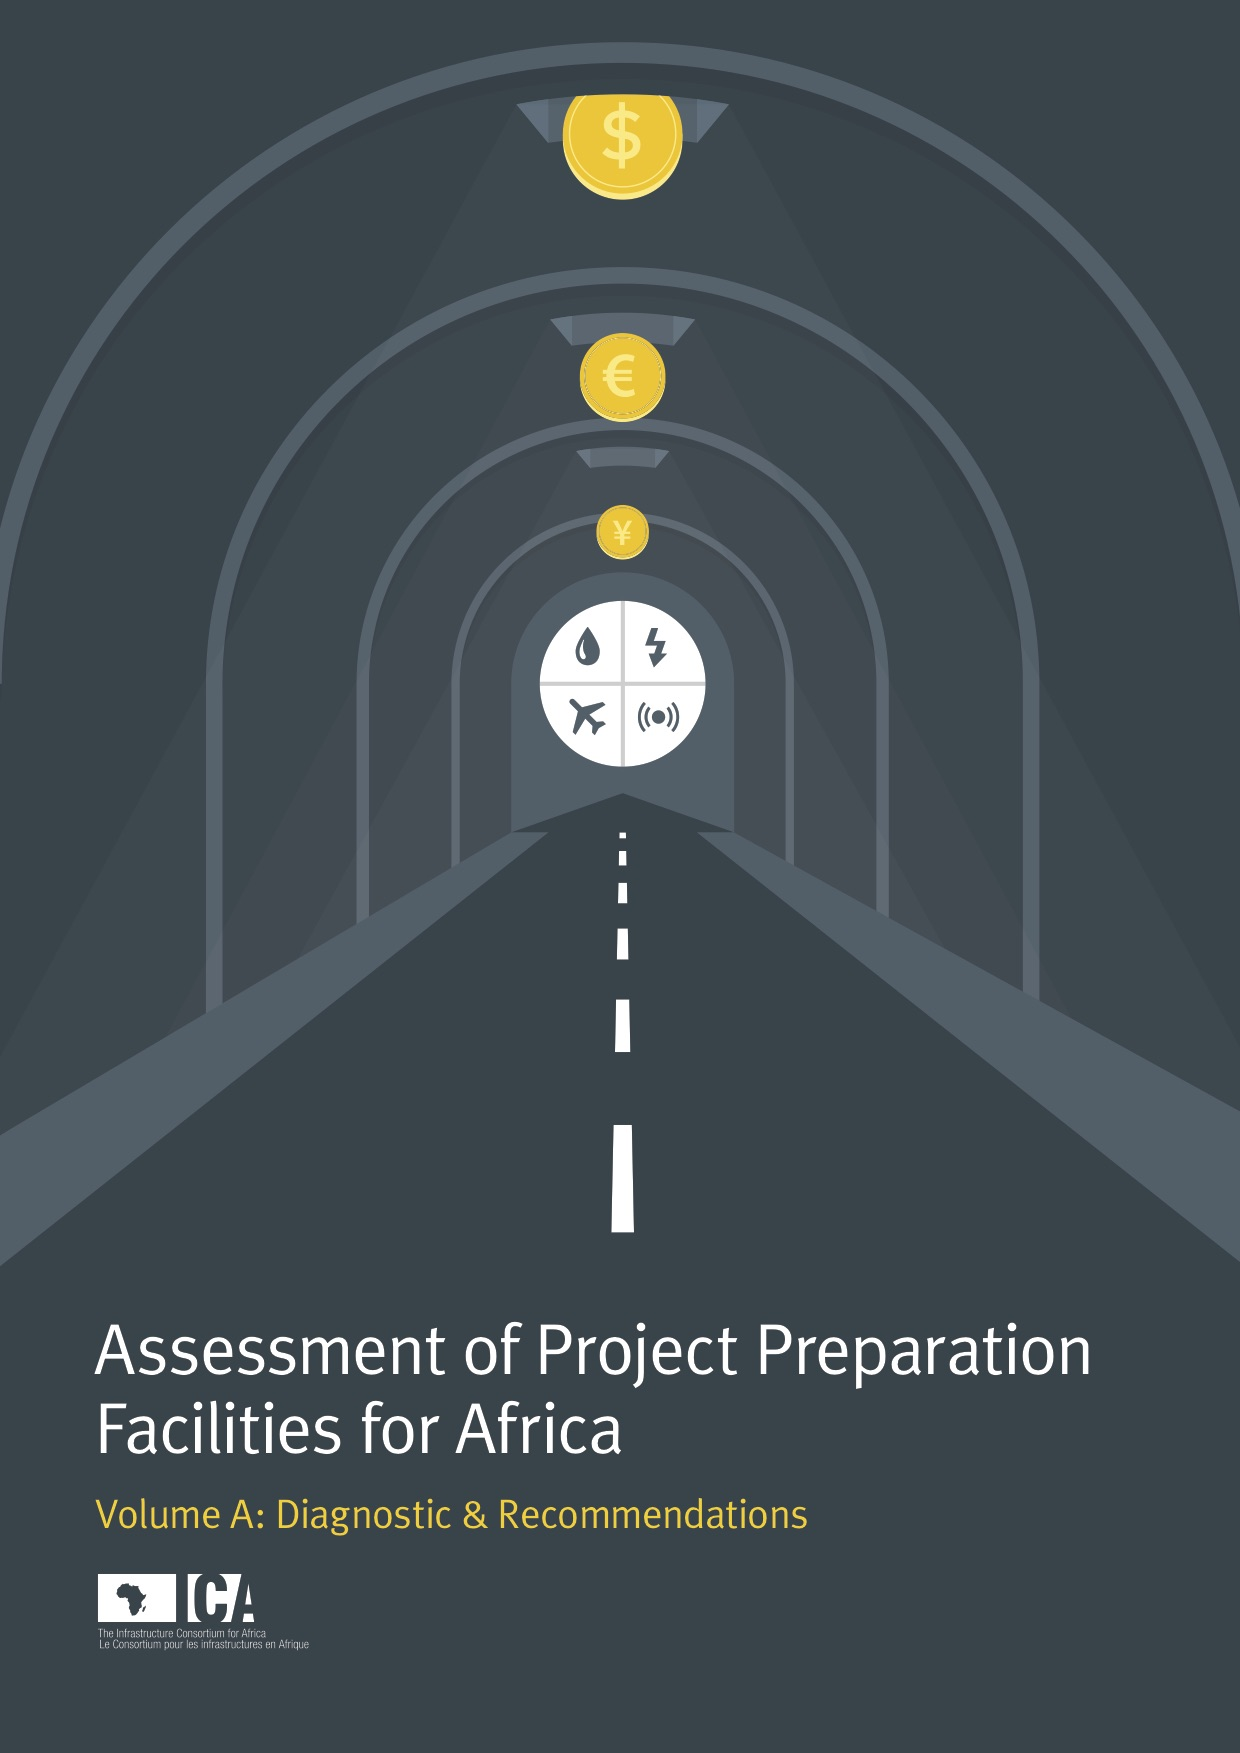 Assessment of Project Preparation Facilities for Africa